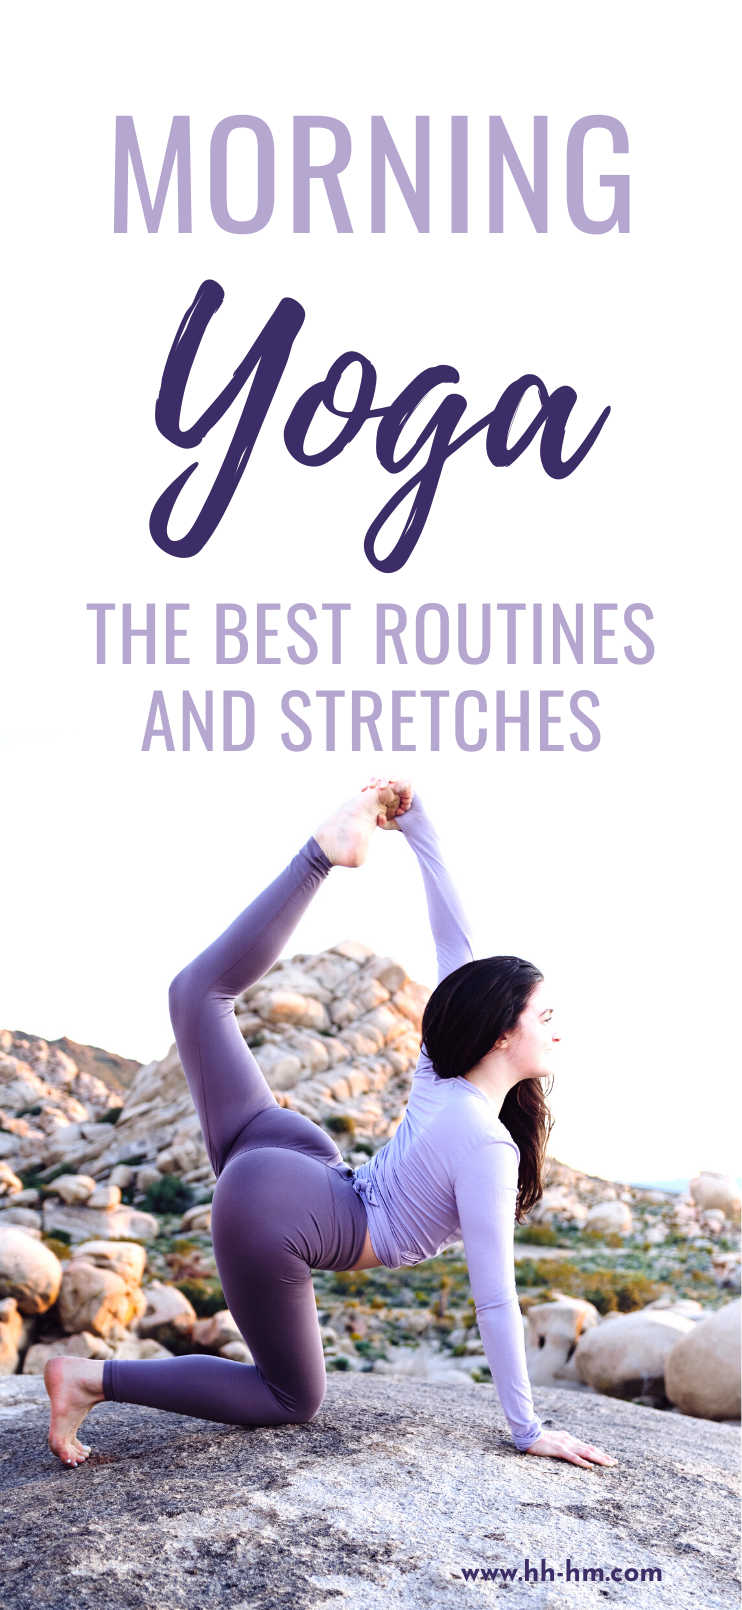 Morning yoga routine - the best yoga stretches and routines to do after you wake up to improve flexibility, strengthen and stretch your body.